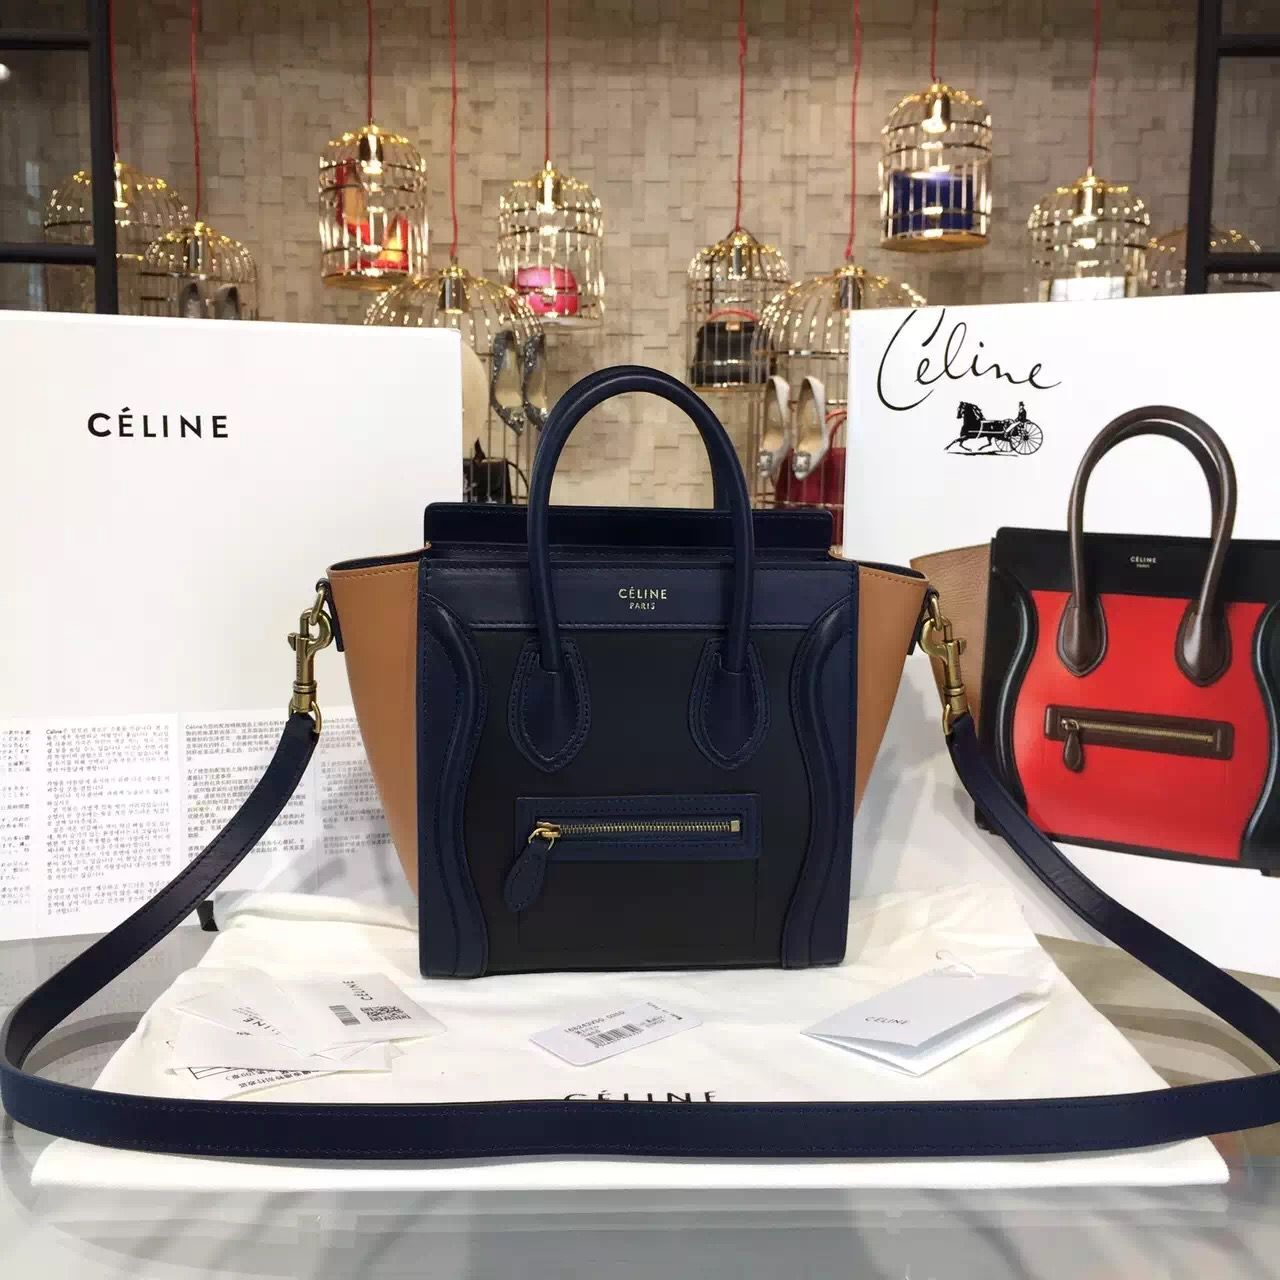 0f82868a1eaa Celine Tricolor Nano Luggage in Original Smooth Calfskin Black Deep  Blue Brown